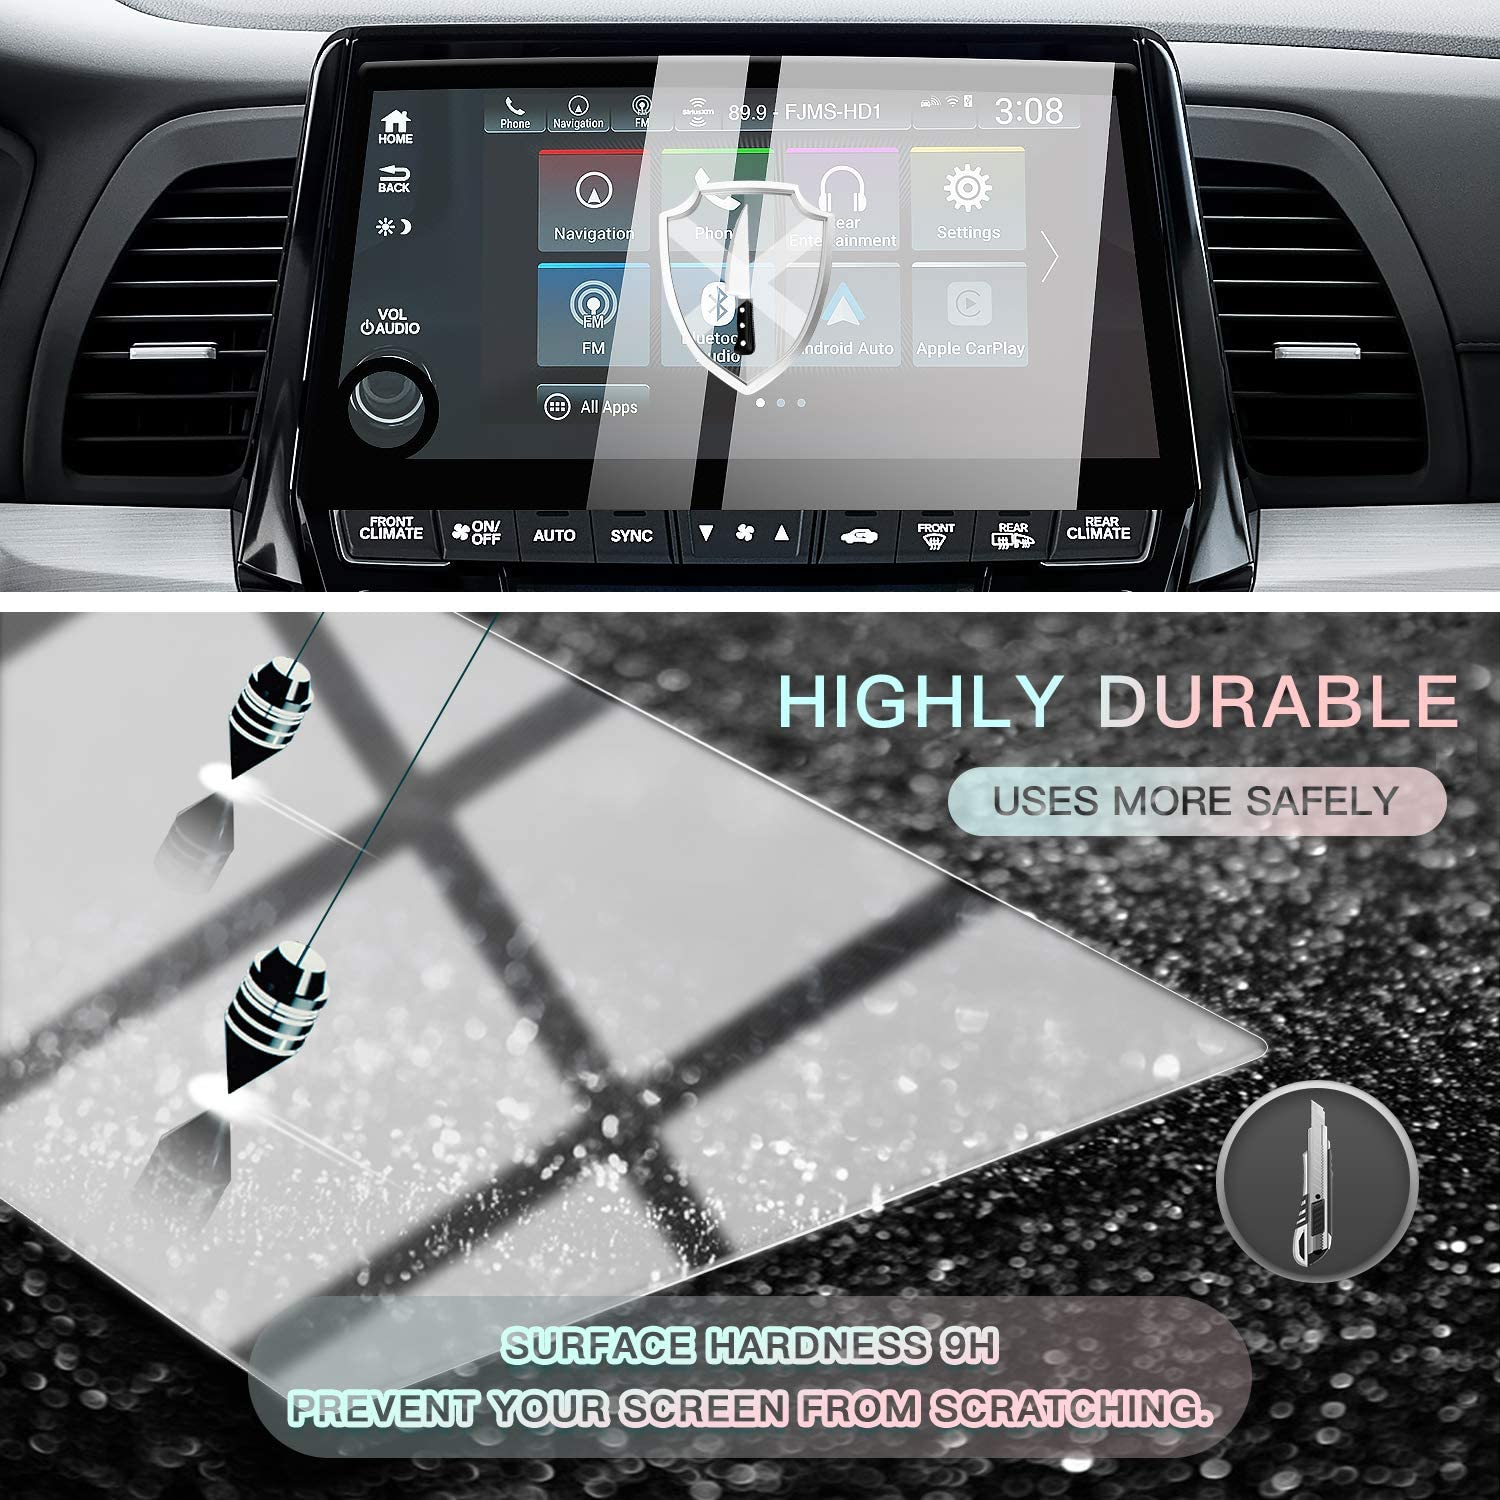 CDEFG Car Center Control Touch Screen Navigation Screen Protector for 2018 2019 Odyssey EX EX-L Touring 8-Inch Clear HD Anti-Explosion Touchscreen with Silk-Screen Printing Tech